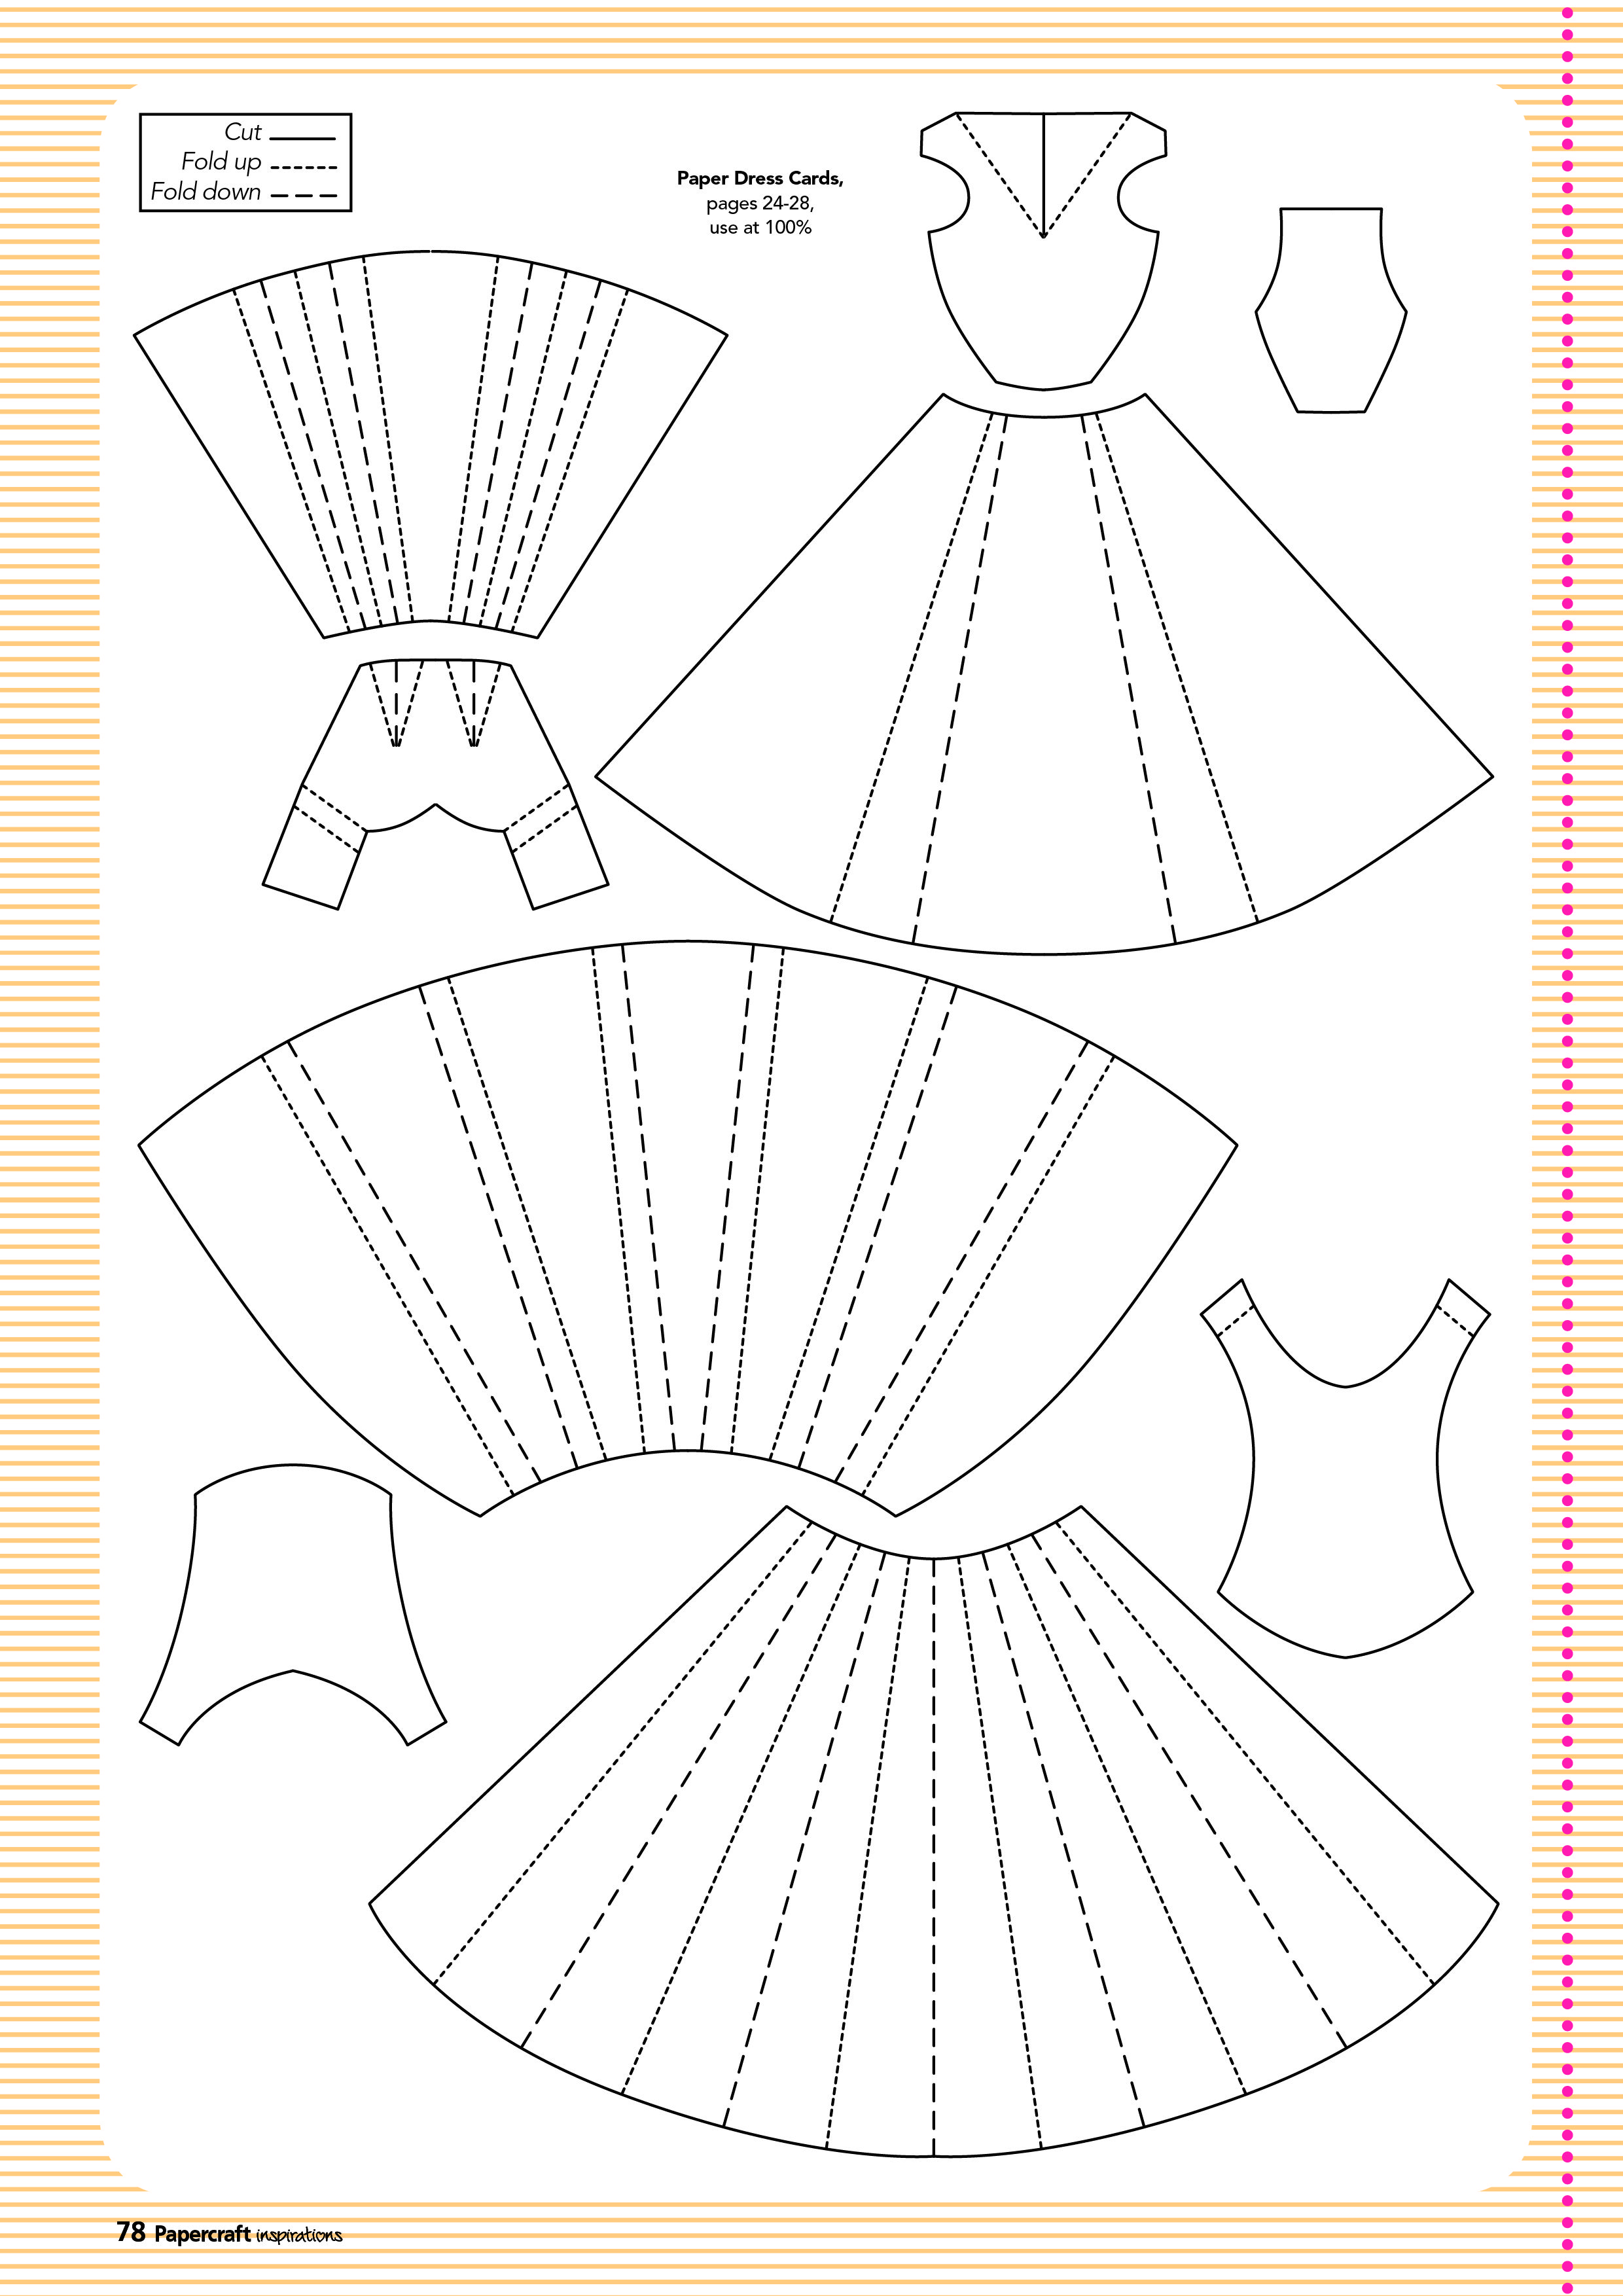 129 templates 2 : Silhouette - Cameo : Pinterest : Cards ...